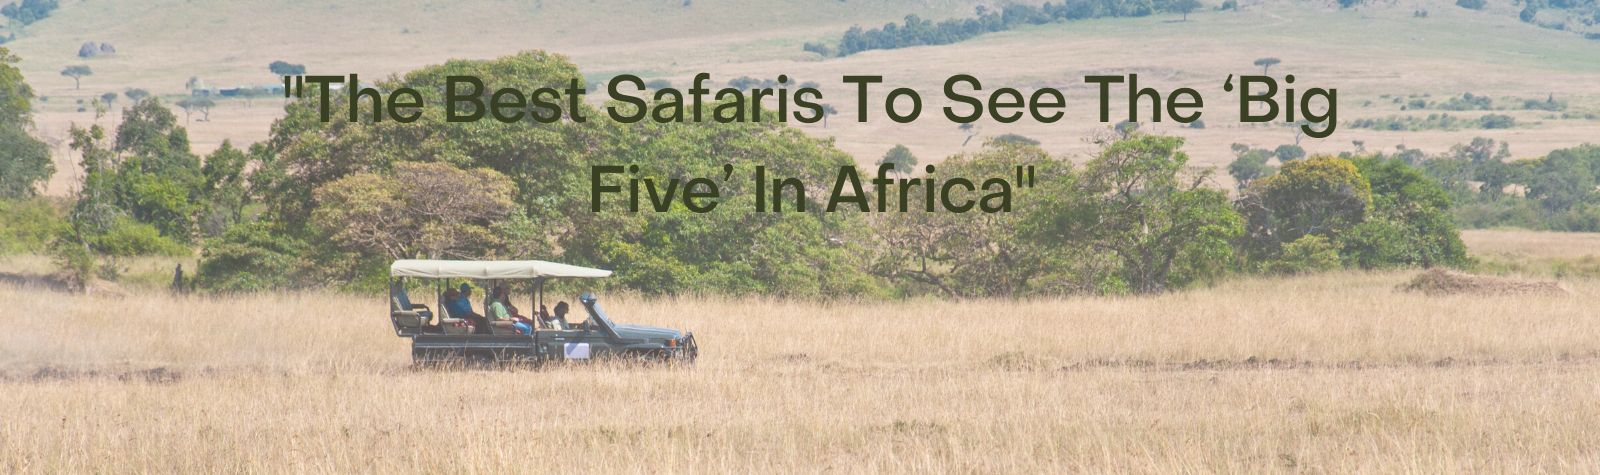 The Best Safaris To See The 'Big Five' In Africa